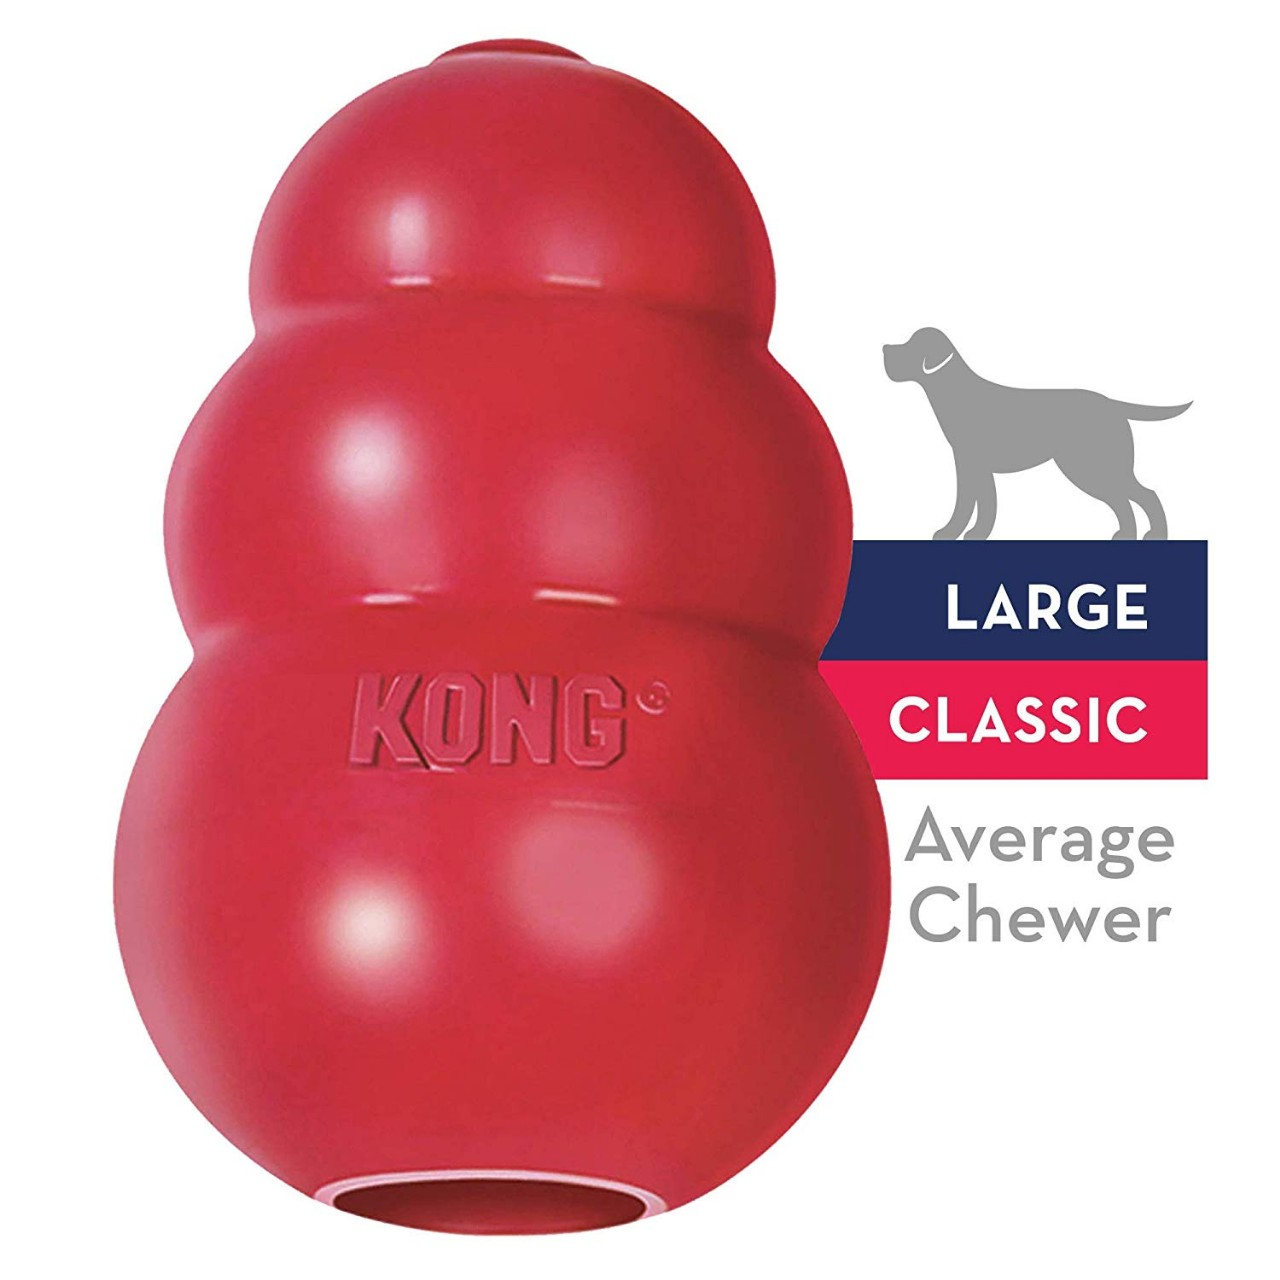 Classic Dog Toy - Durable Natural Rubber - Fun to Chew, Chase and Fetch